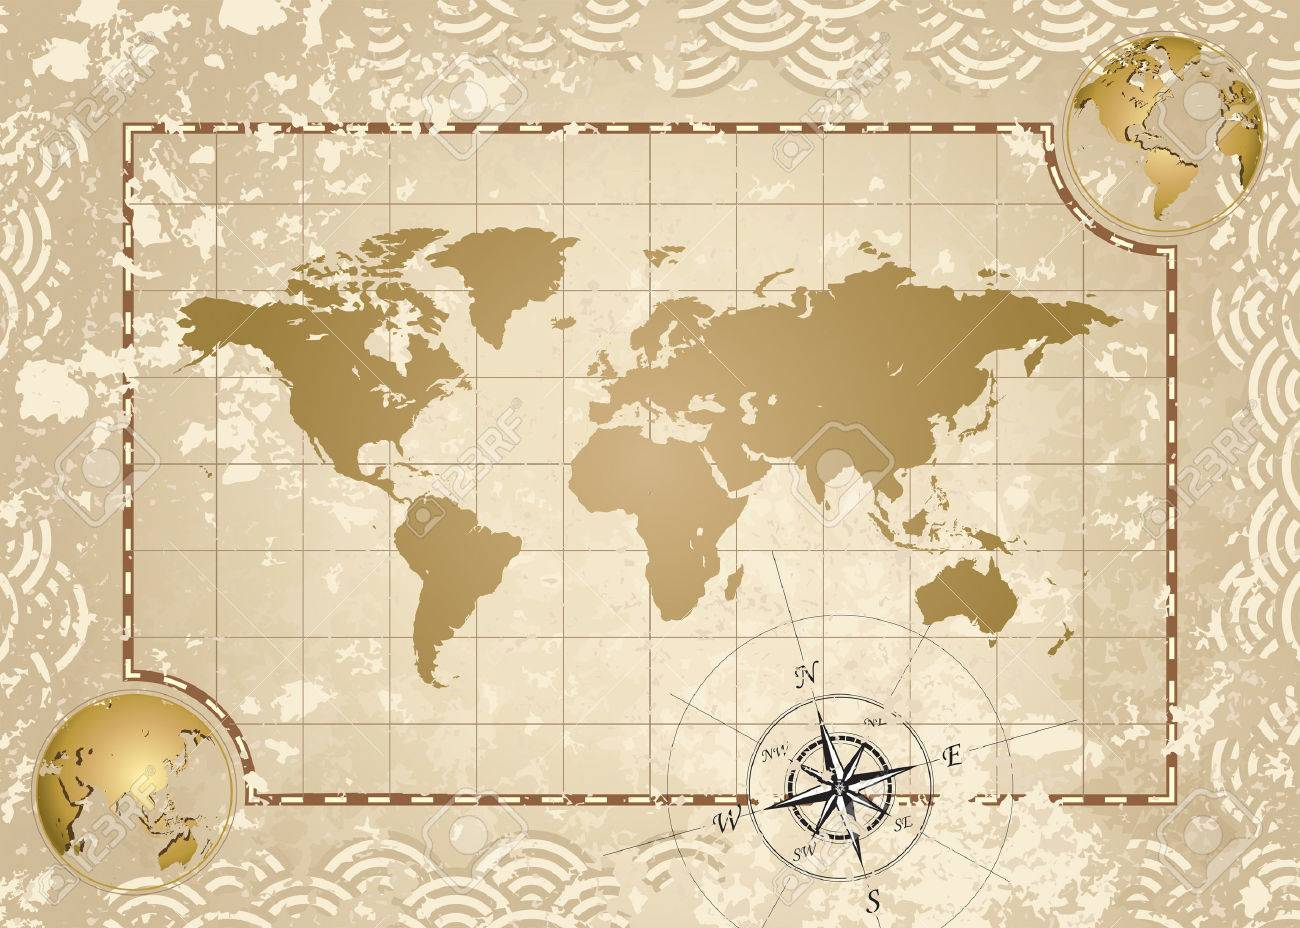 Antique Style World Map Vector Illustration Layered Royalty Free - Map of the world antique style